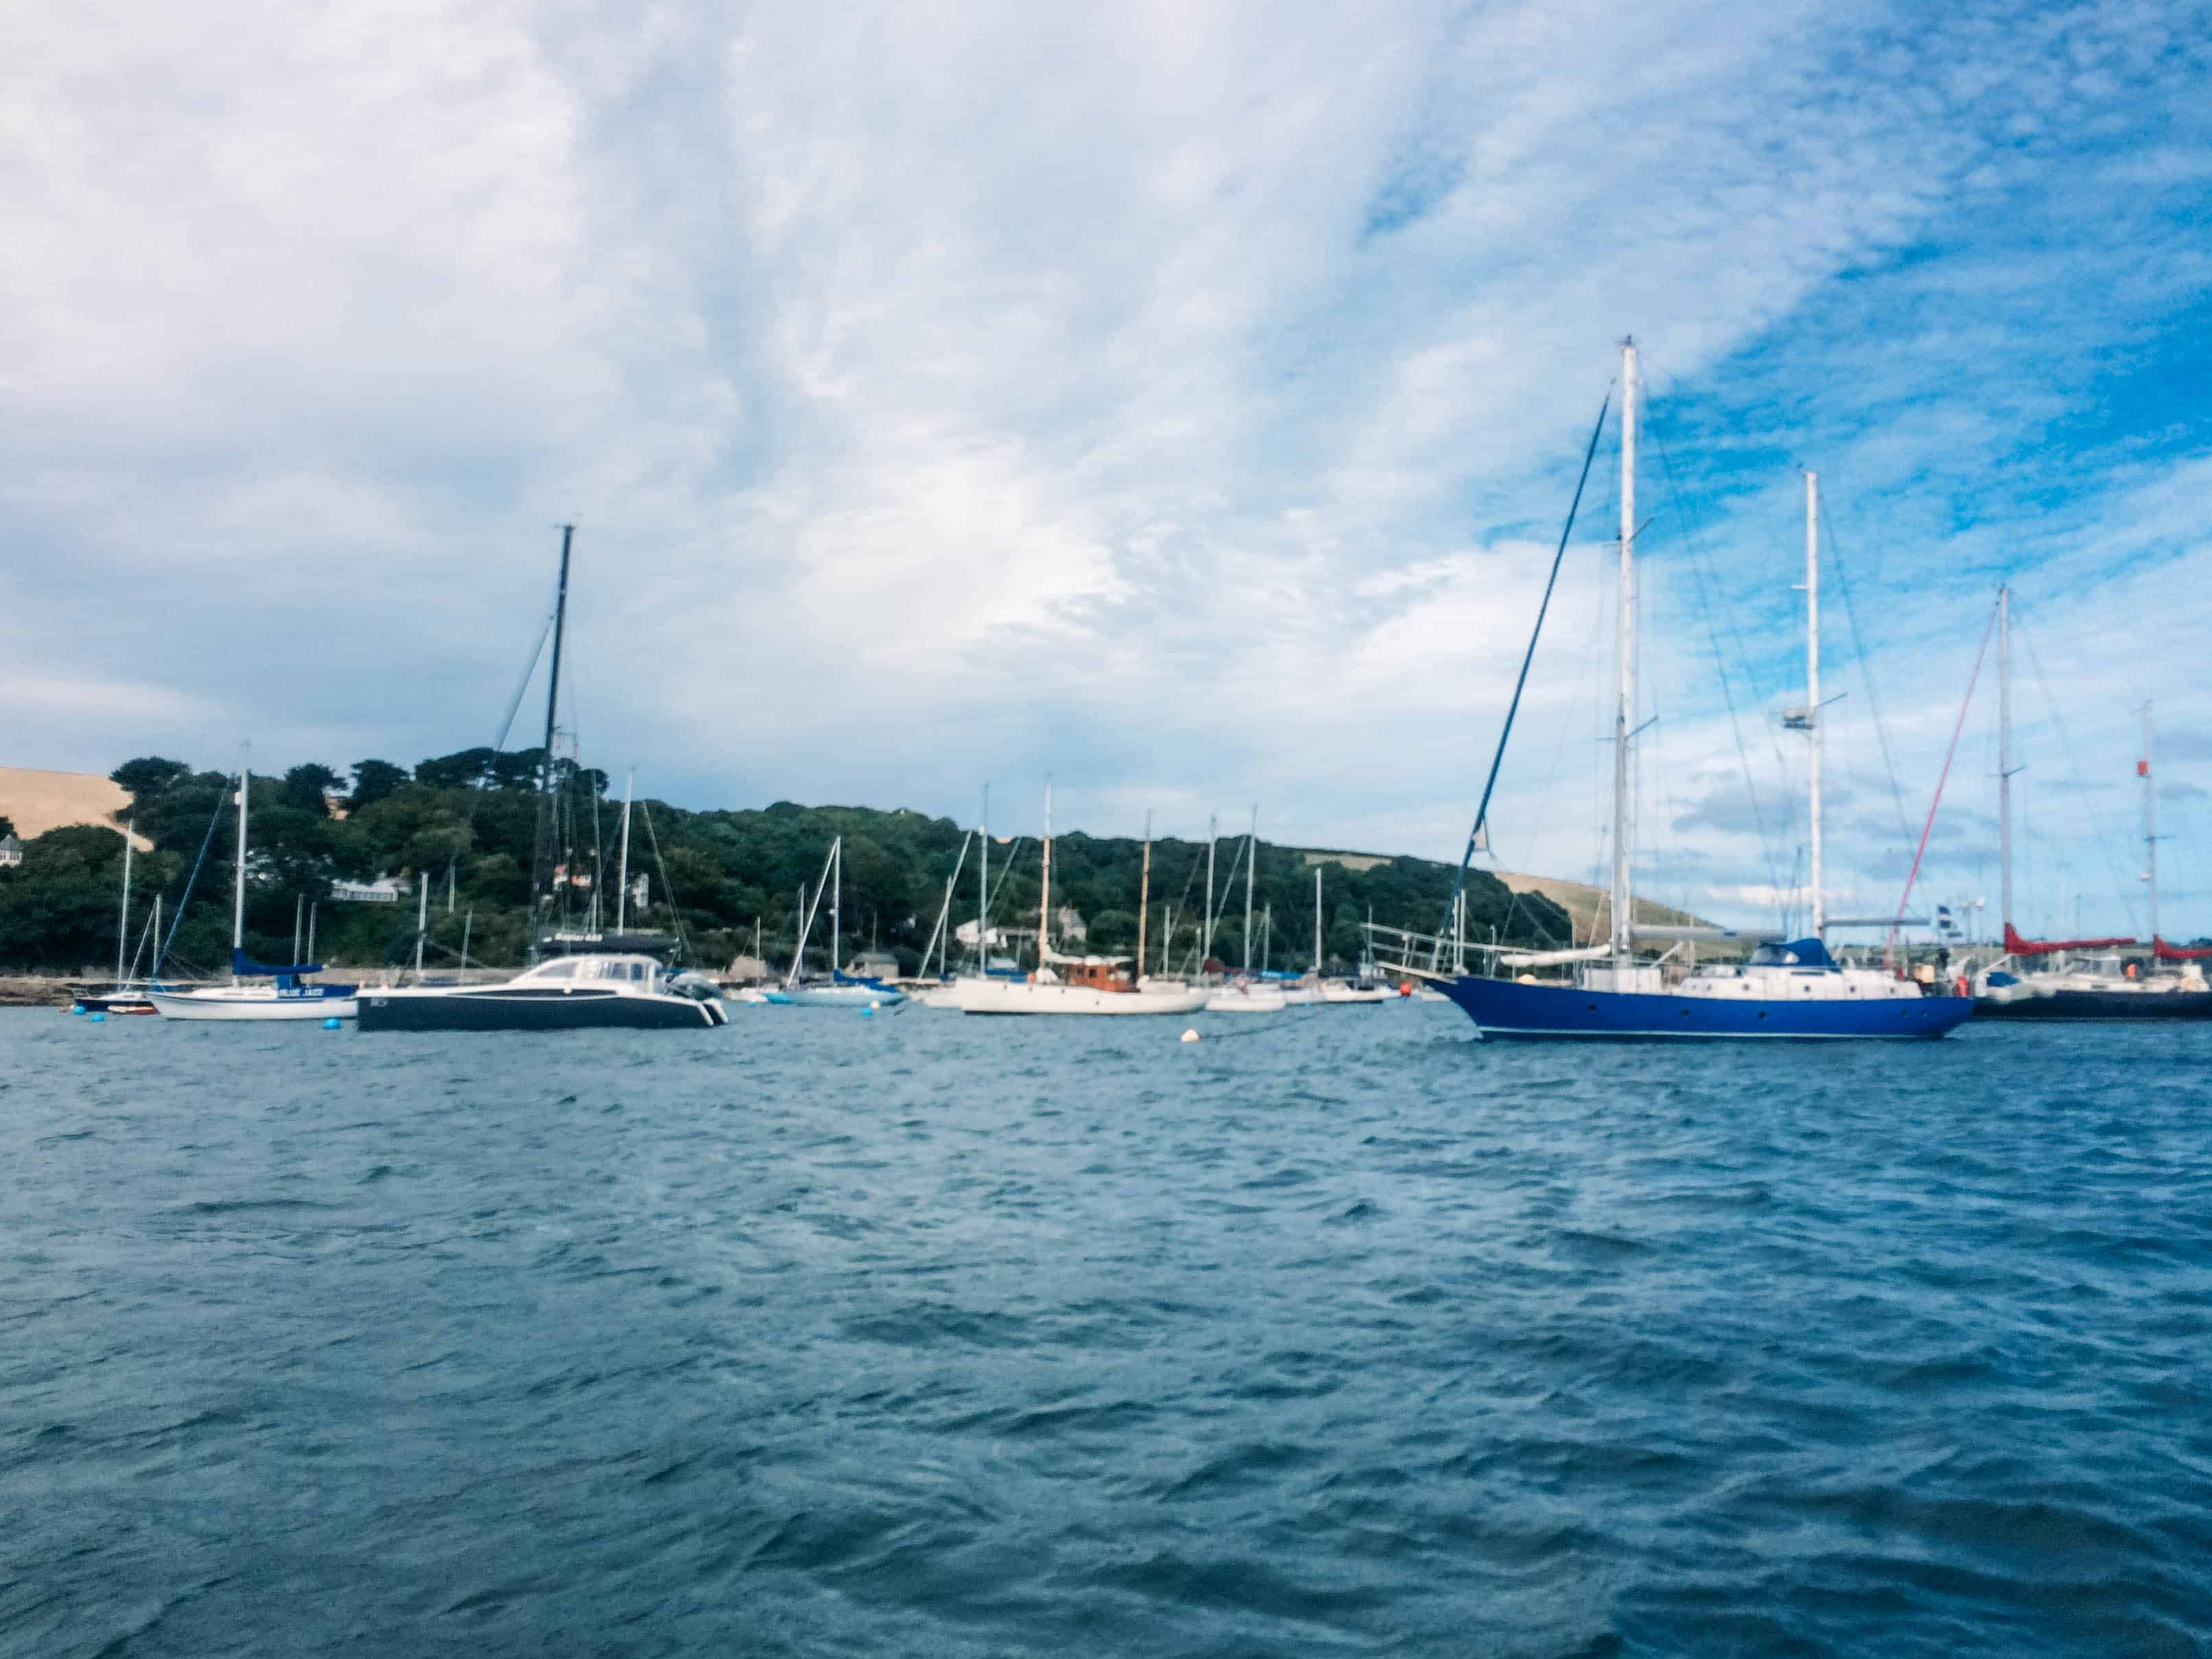 falmouth-rib-charters-greenbank-hotel-cornwall-adventures-boating